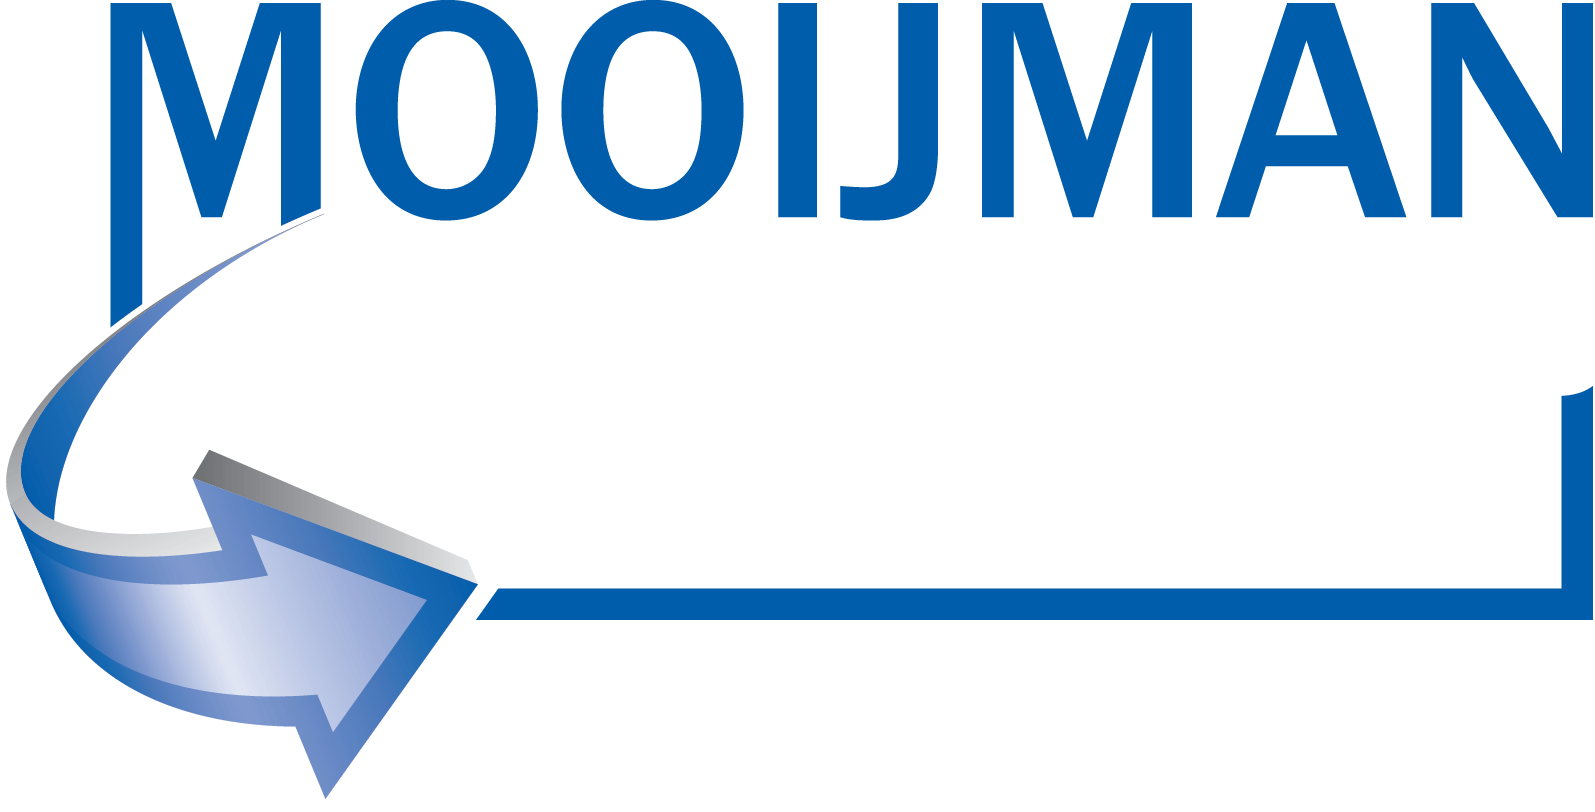 Mooijman Marketing & Sales